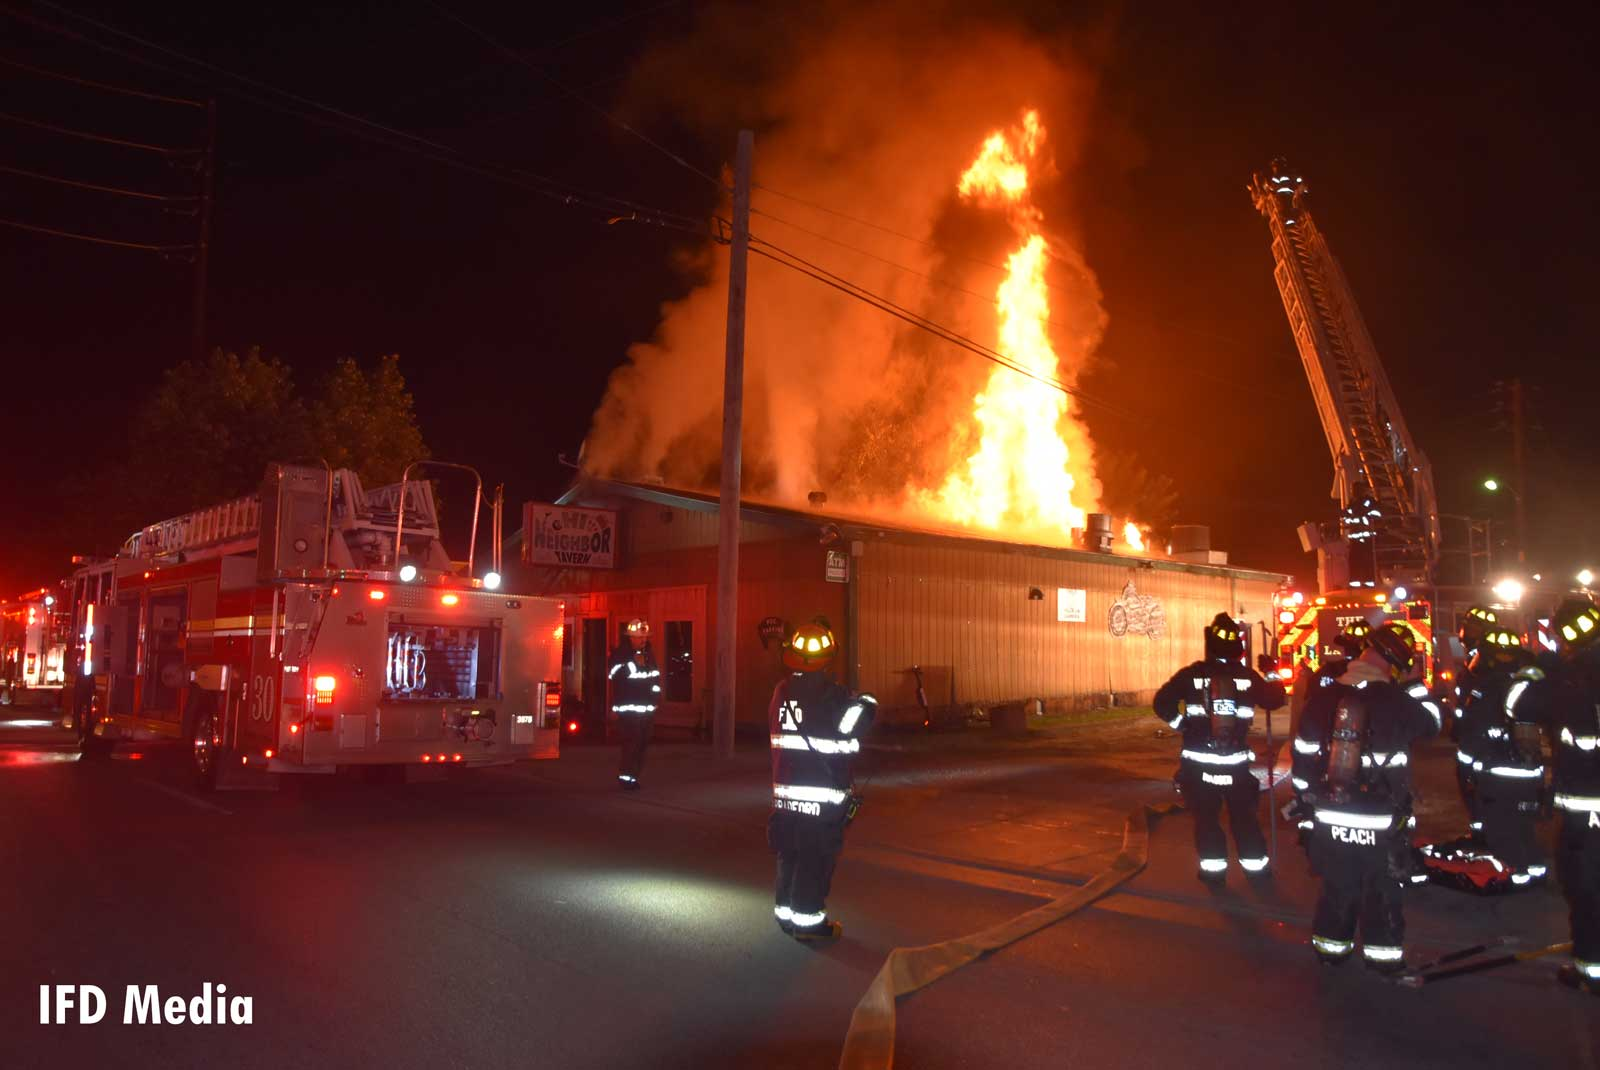 On September 11, 2019, Indianapolis firefighters respond to a fire at the Hi Neighbor Tavern